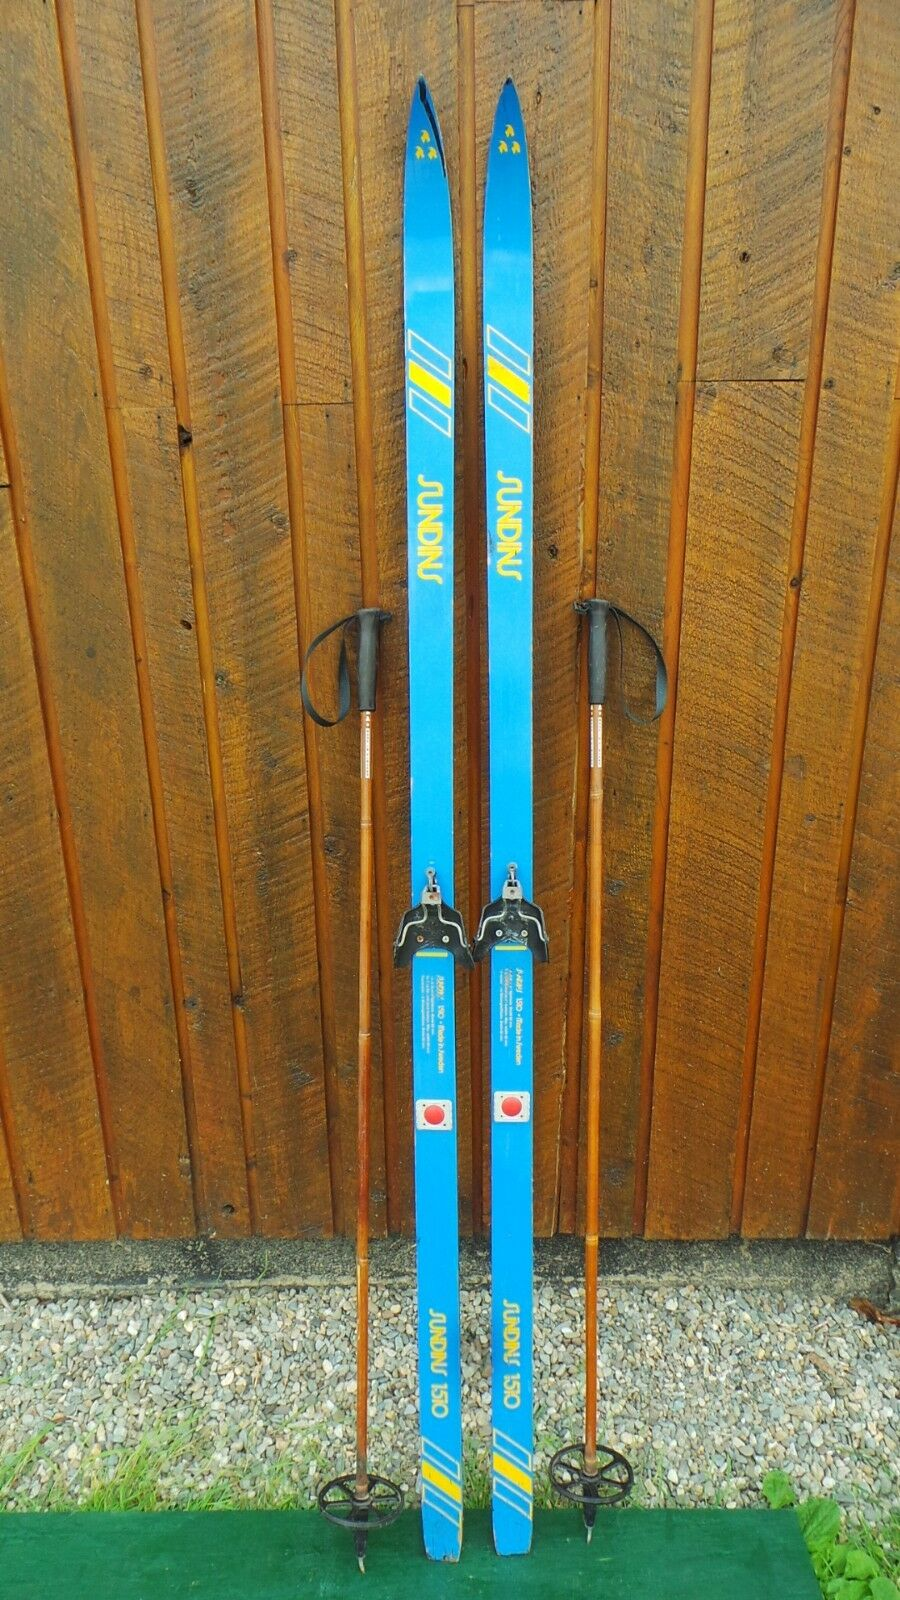 Vintage Wooden Skis 74  Long with Original blueE and YELLOW Finish and Bindings